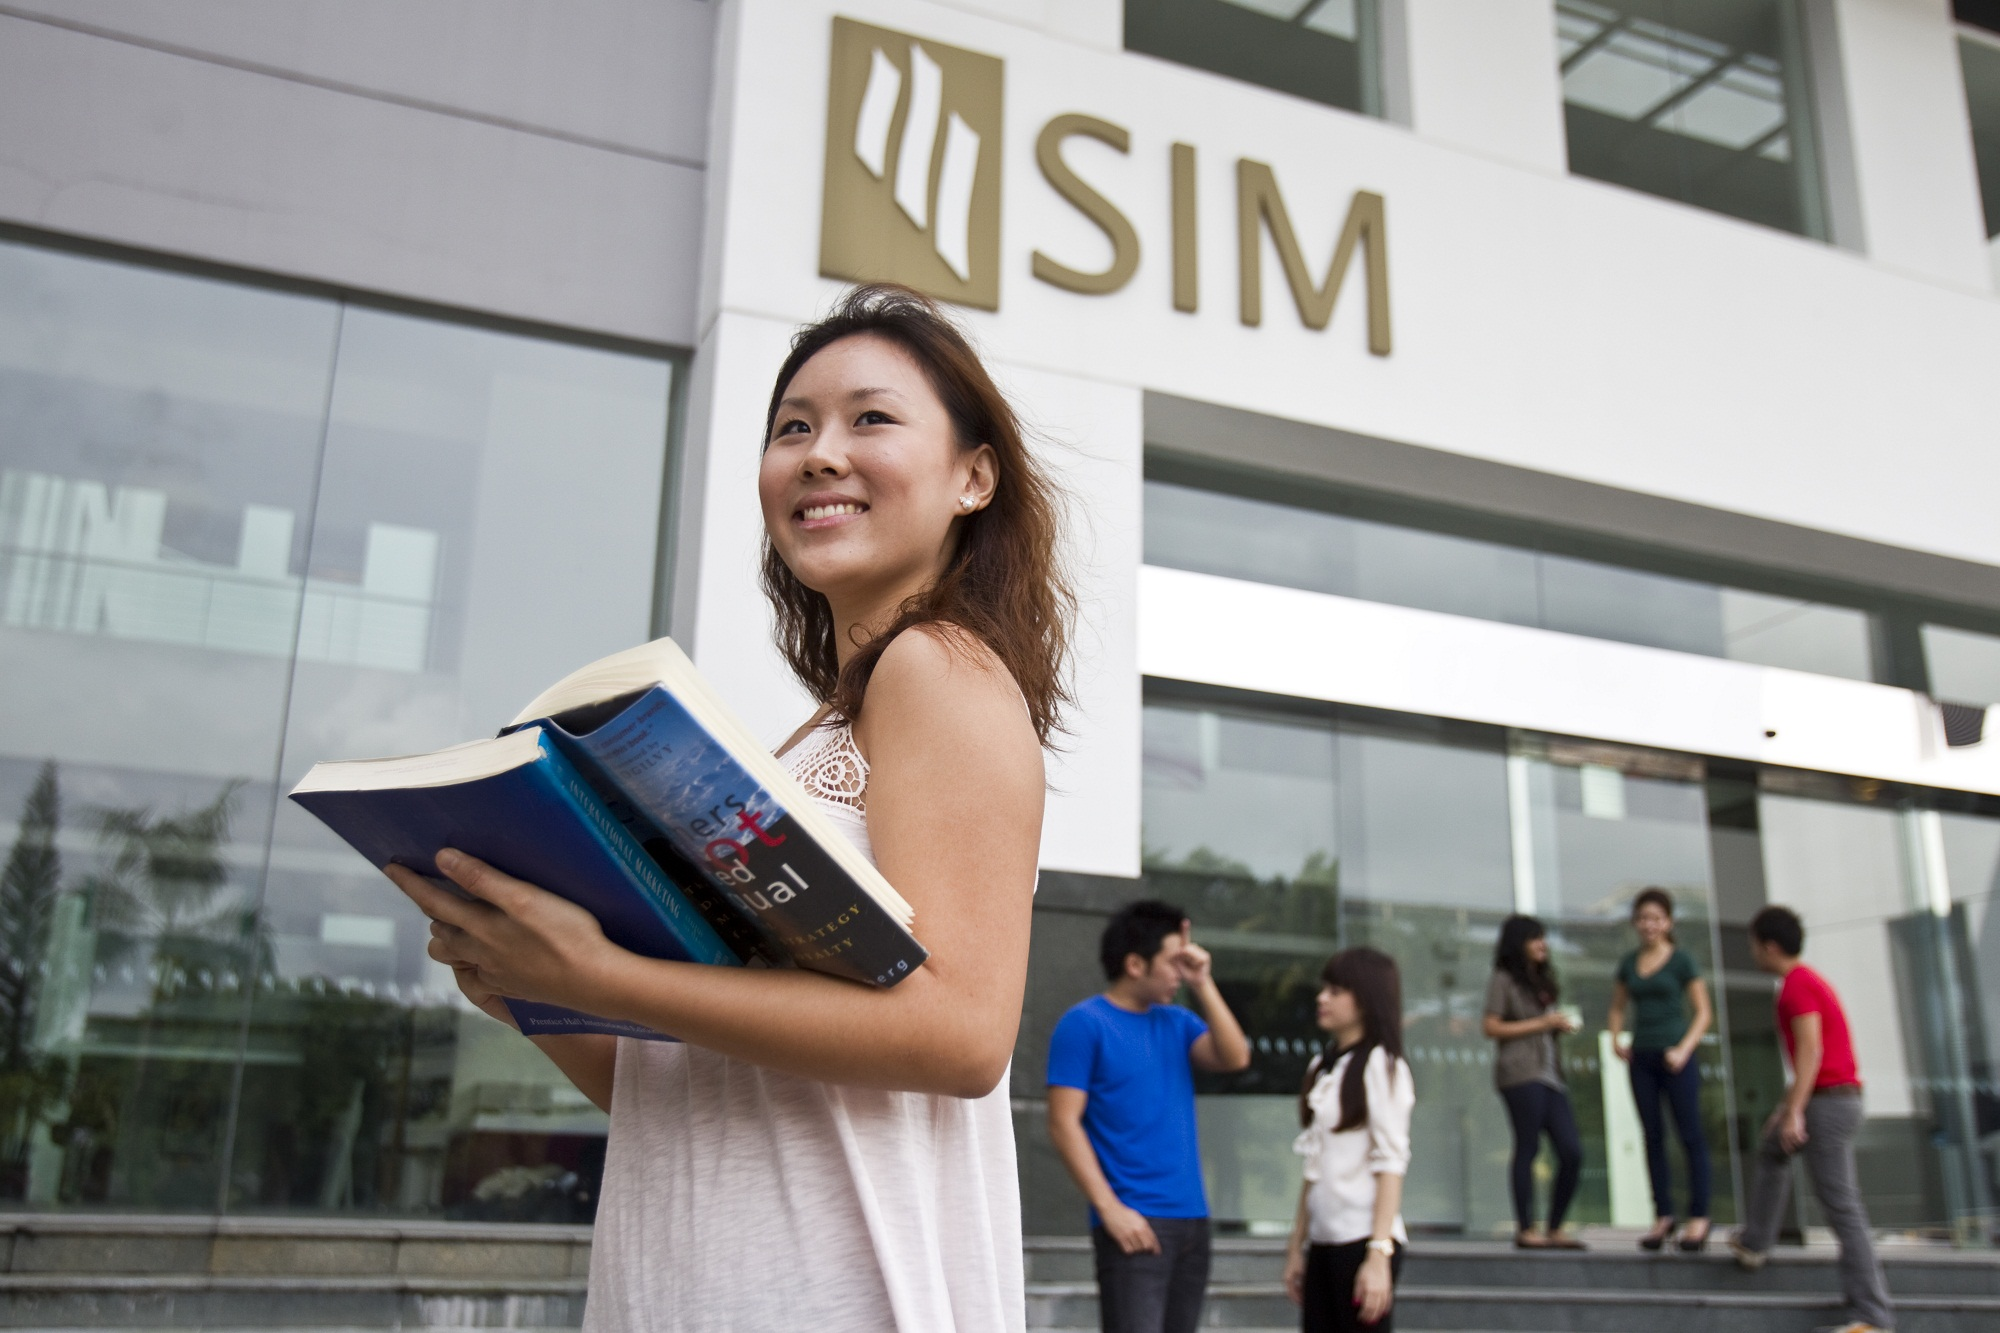 Singapore private university, SIM to invest US$35.1 million to support entrepreneurs in Platform E